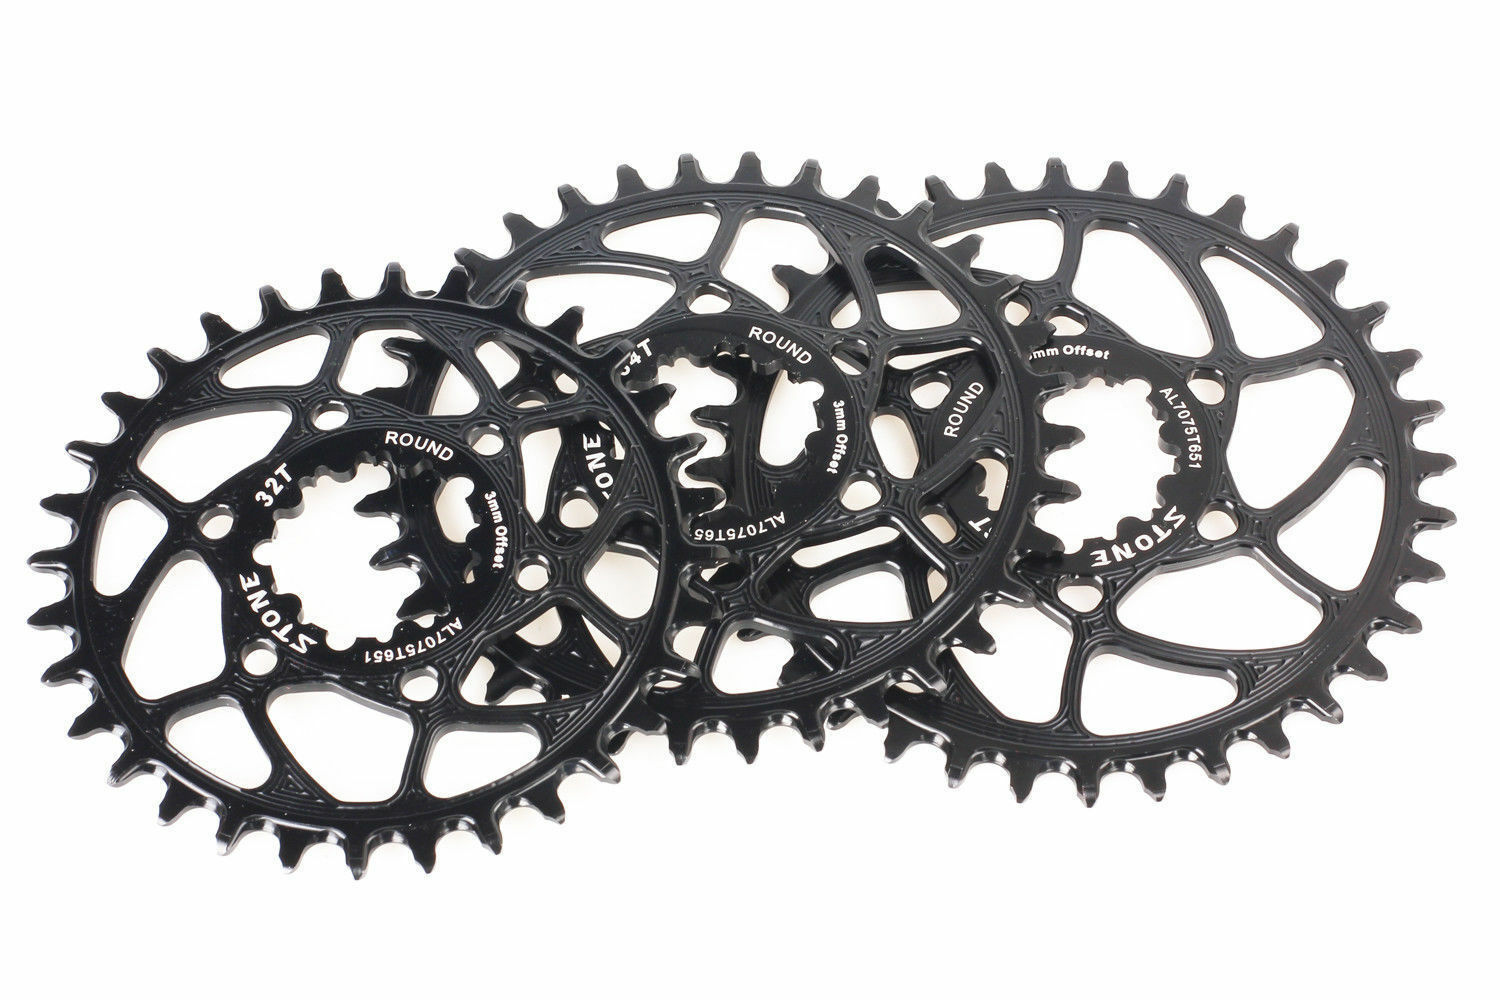 Circle Bicycle Direct Mount Chainring 3mmof for Sram Boost 148  DUB GXP Eagle XX1  the newest